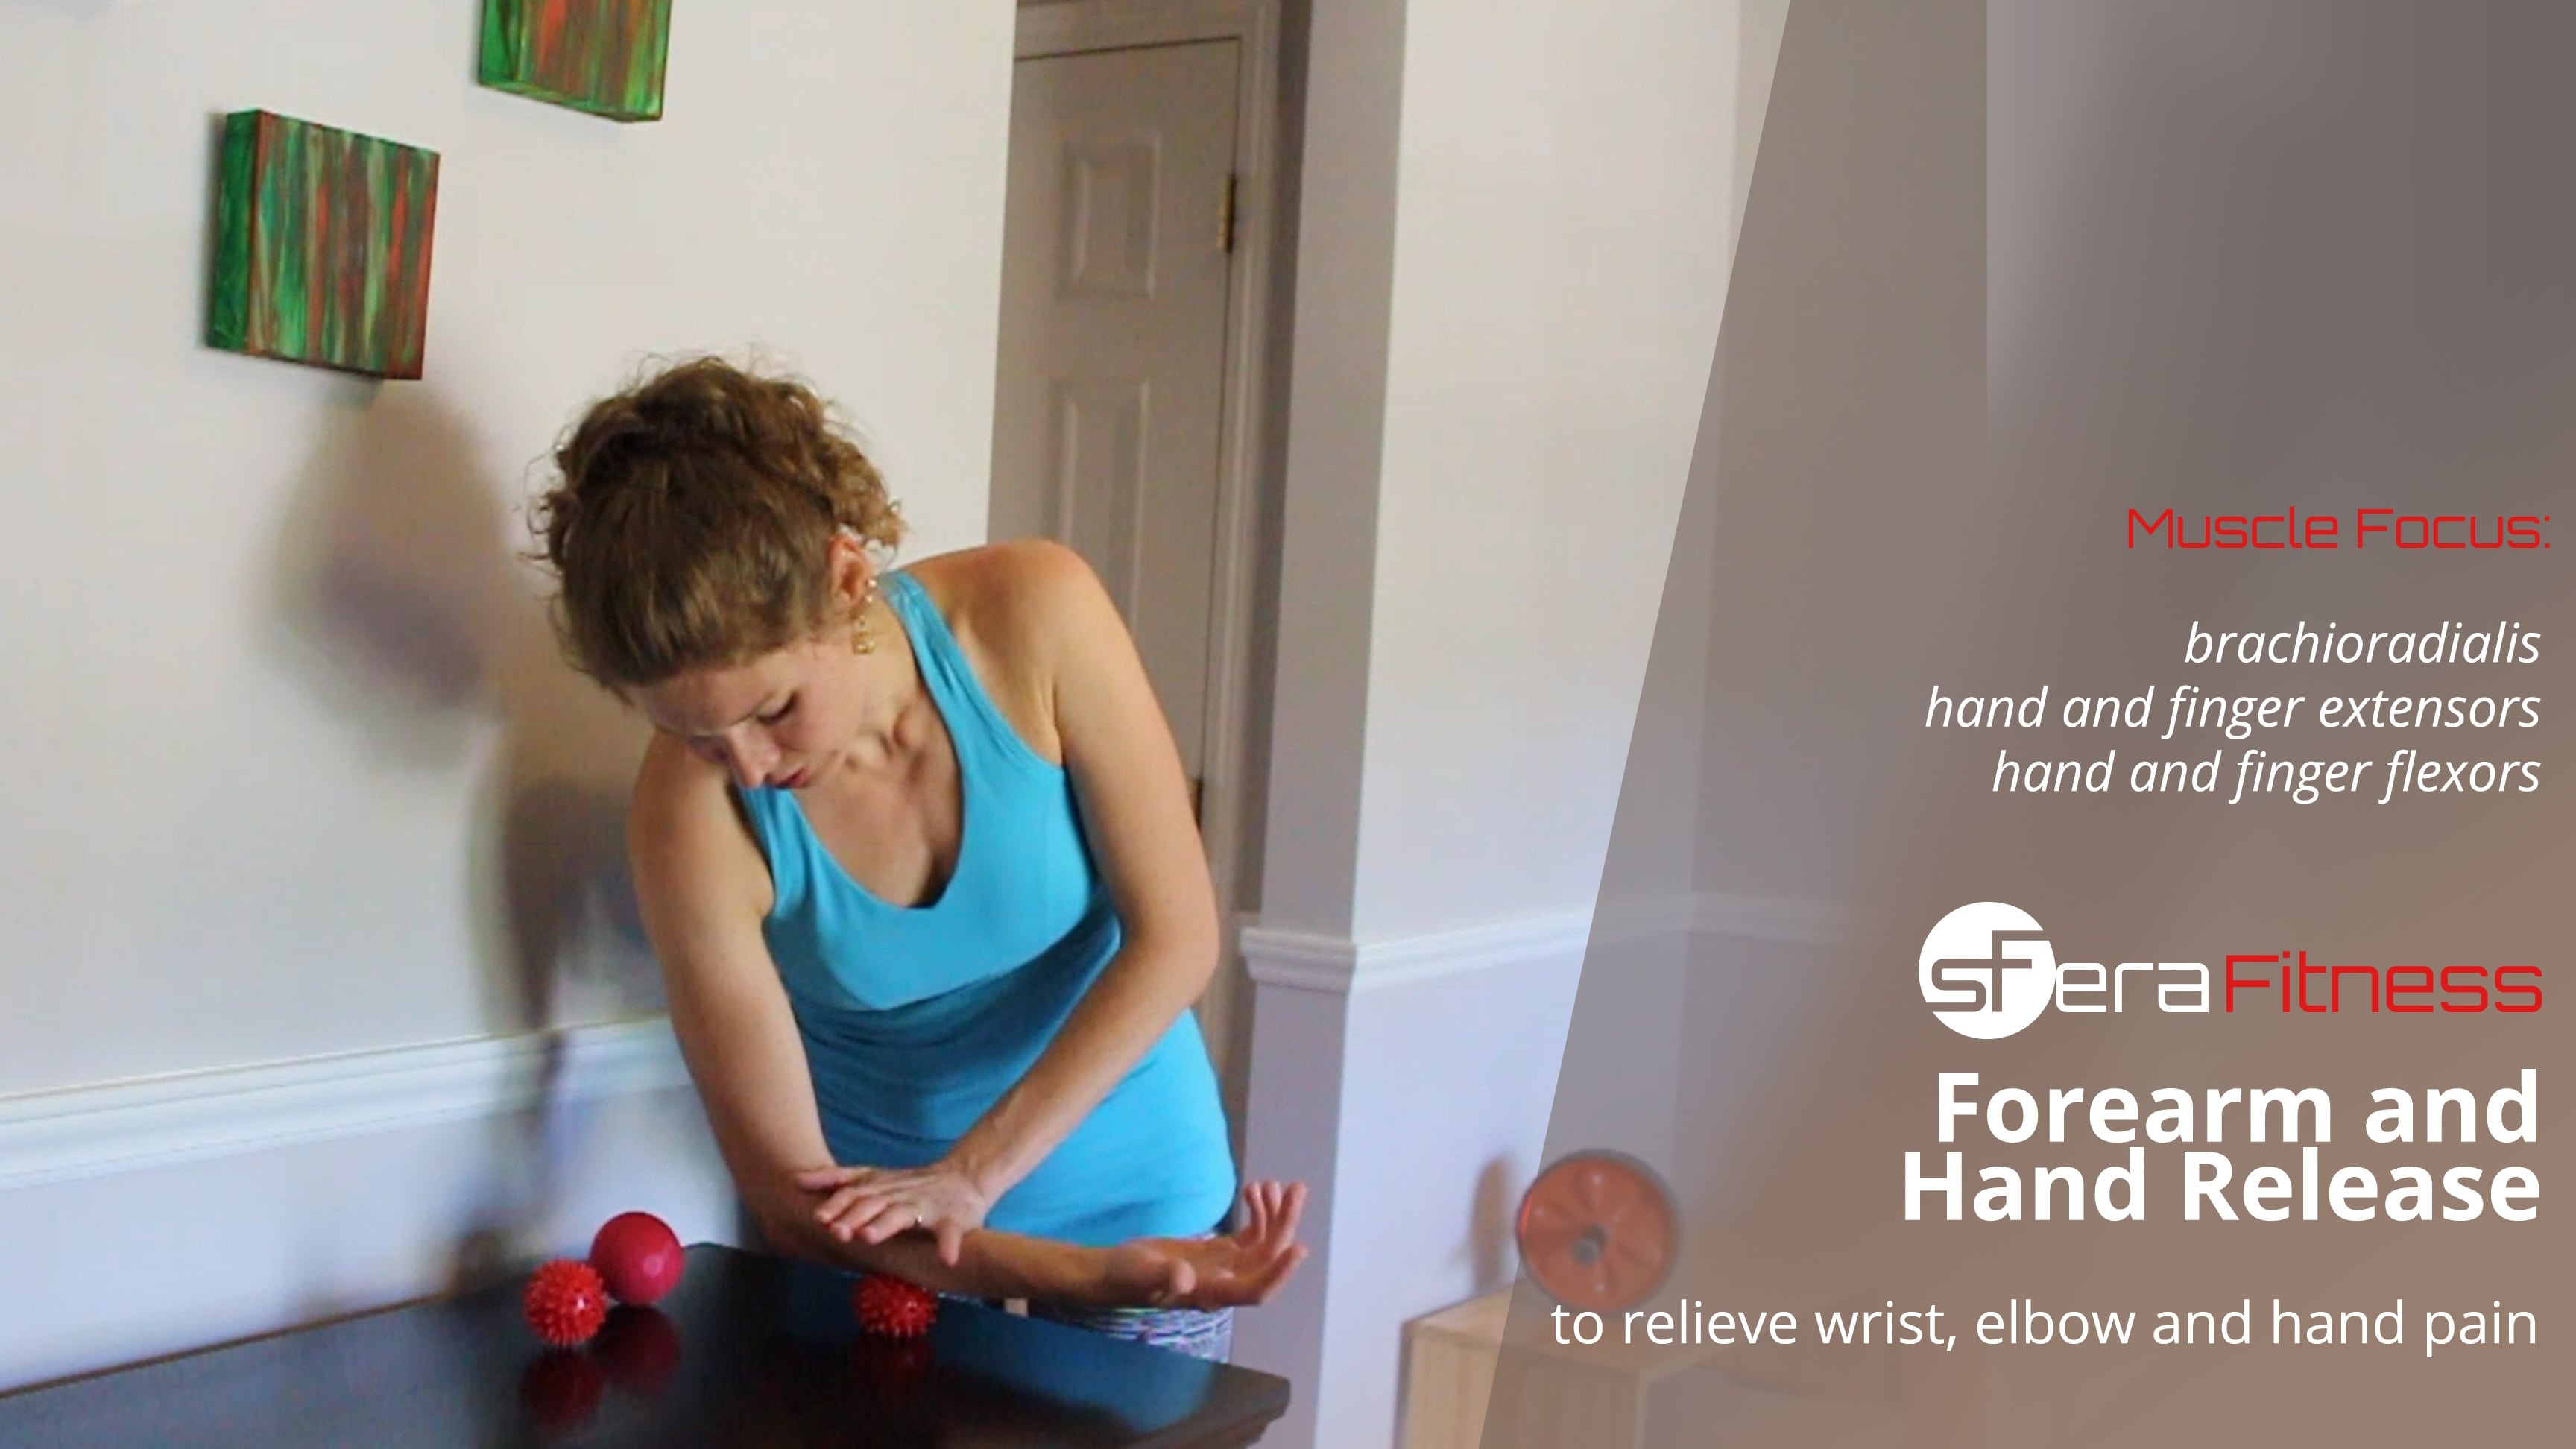 Forearm and Hand Release to Relieve Wrist, Elbow and Hand Pain